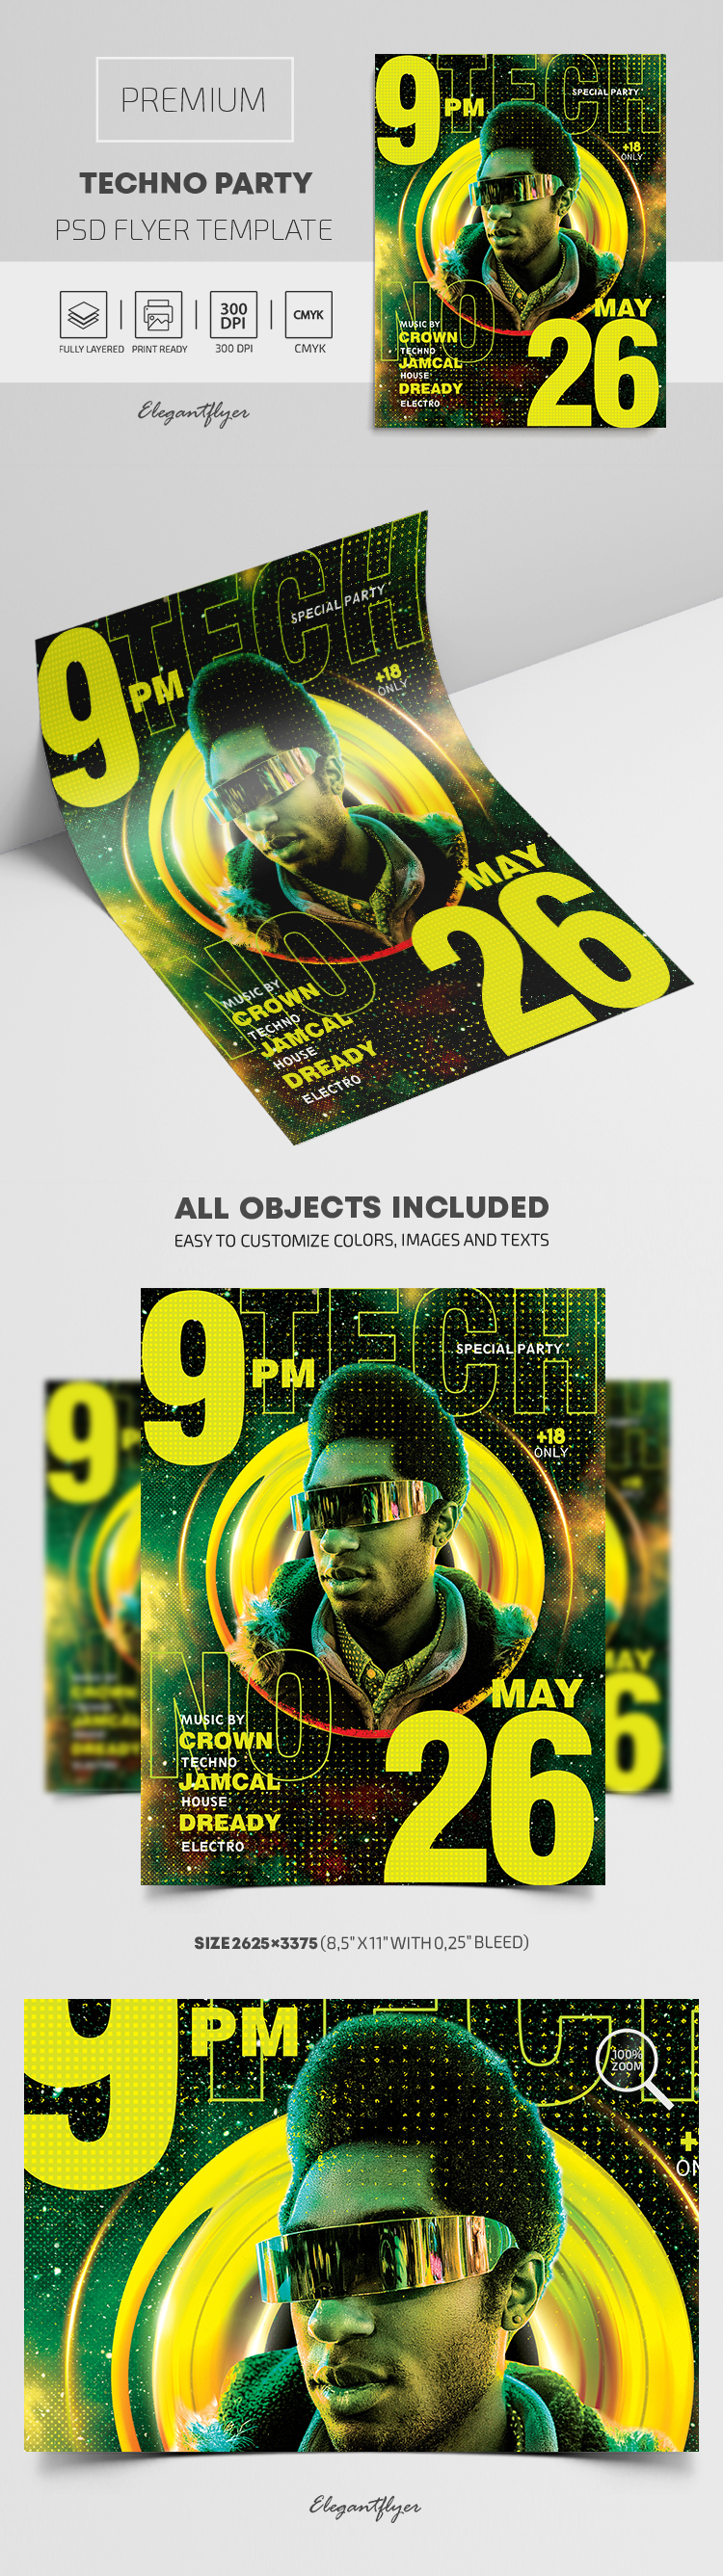 Techno Party – Premium PSD Flyer Template